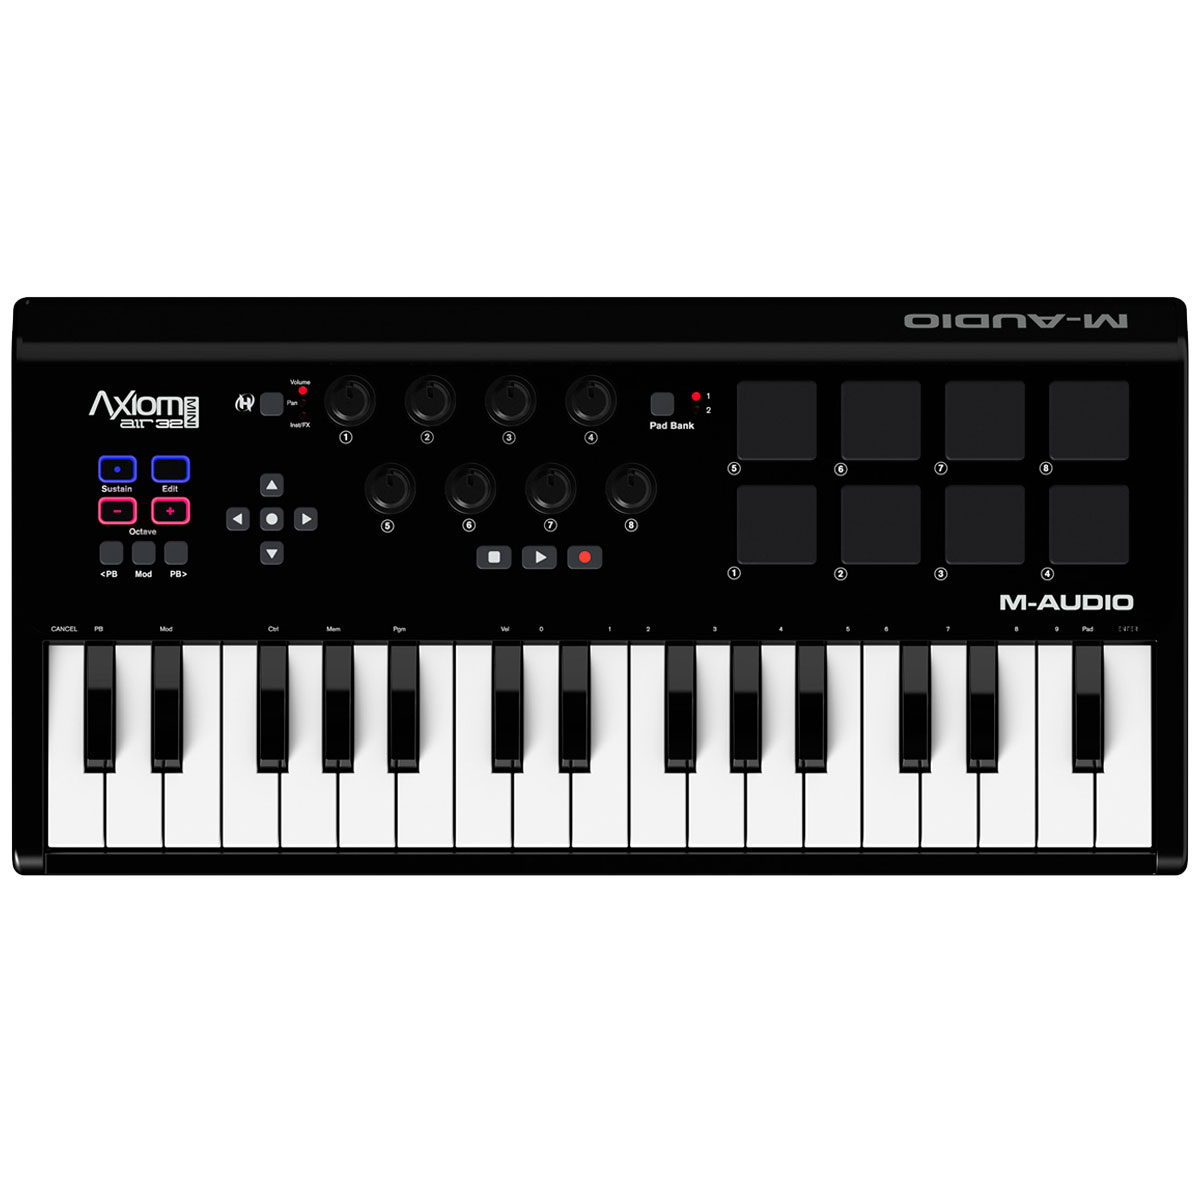 AxiomAirMini32 - Teclado Controlador MIDI / USB Axiom AIR Mini 32 - M-Audio